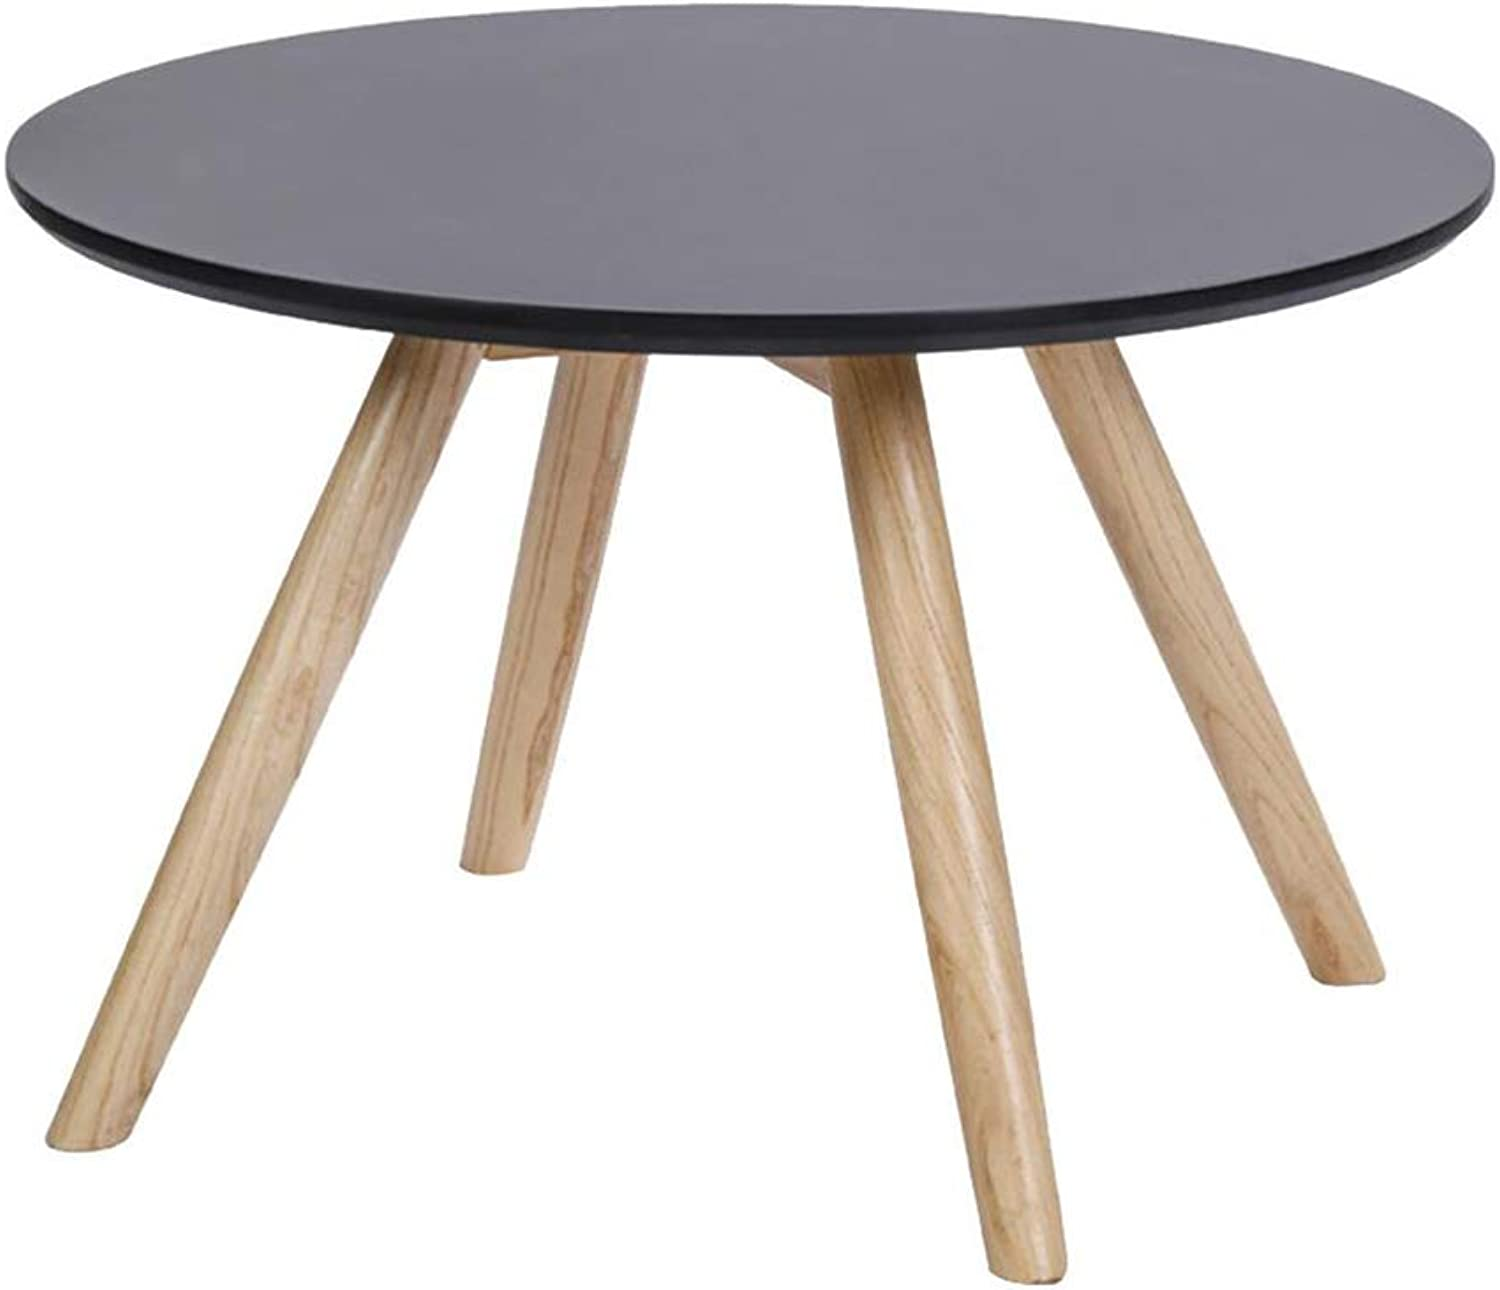 Sofa Side Table Solid Wood Balcony Round Coffee Table Corner Small Round Table Coffee Table Side,Black